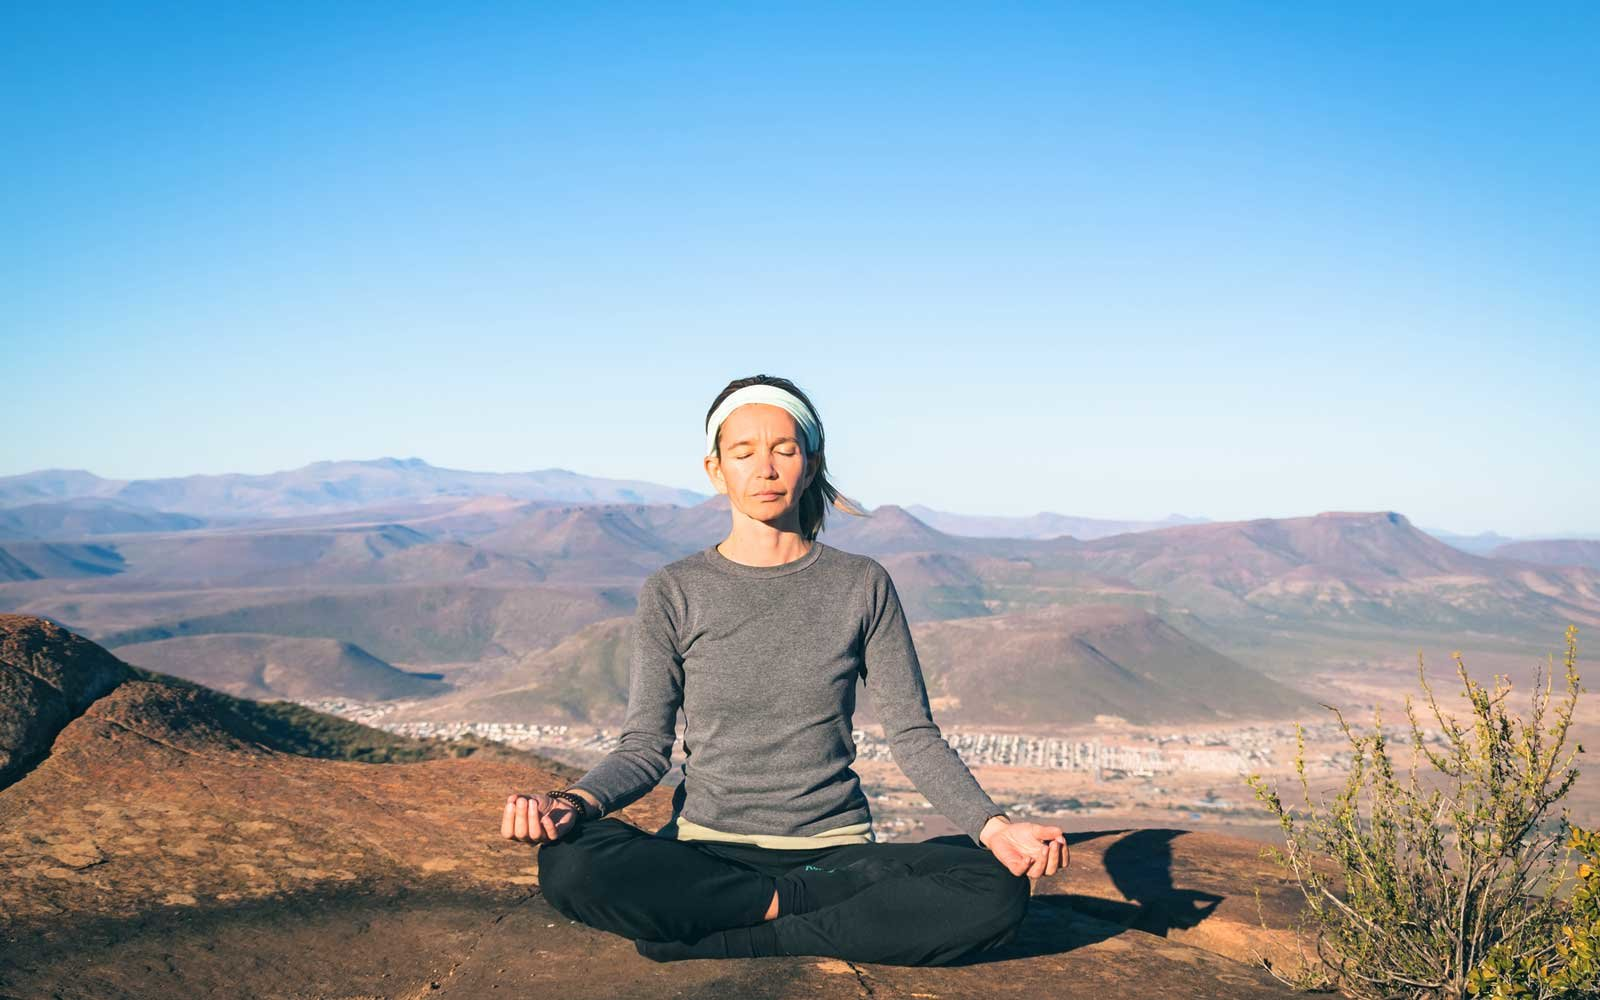 Woman Practicing Yoga On Rock At Mountain Peak Against Blue Sky During Sunny Day